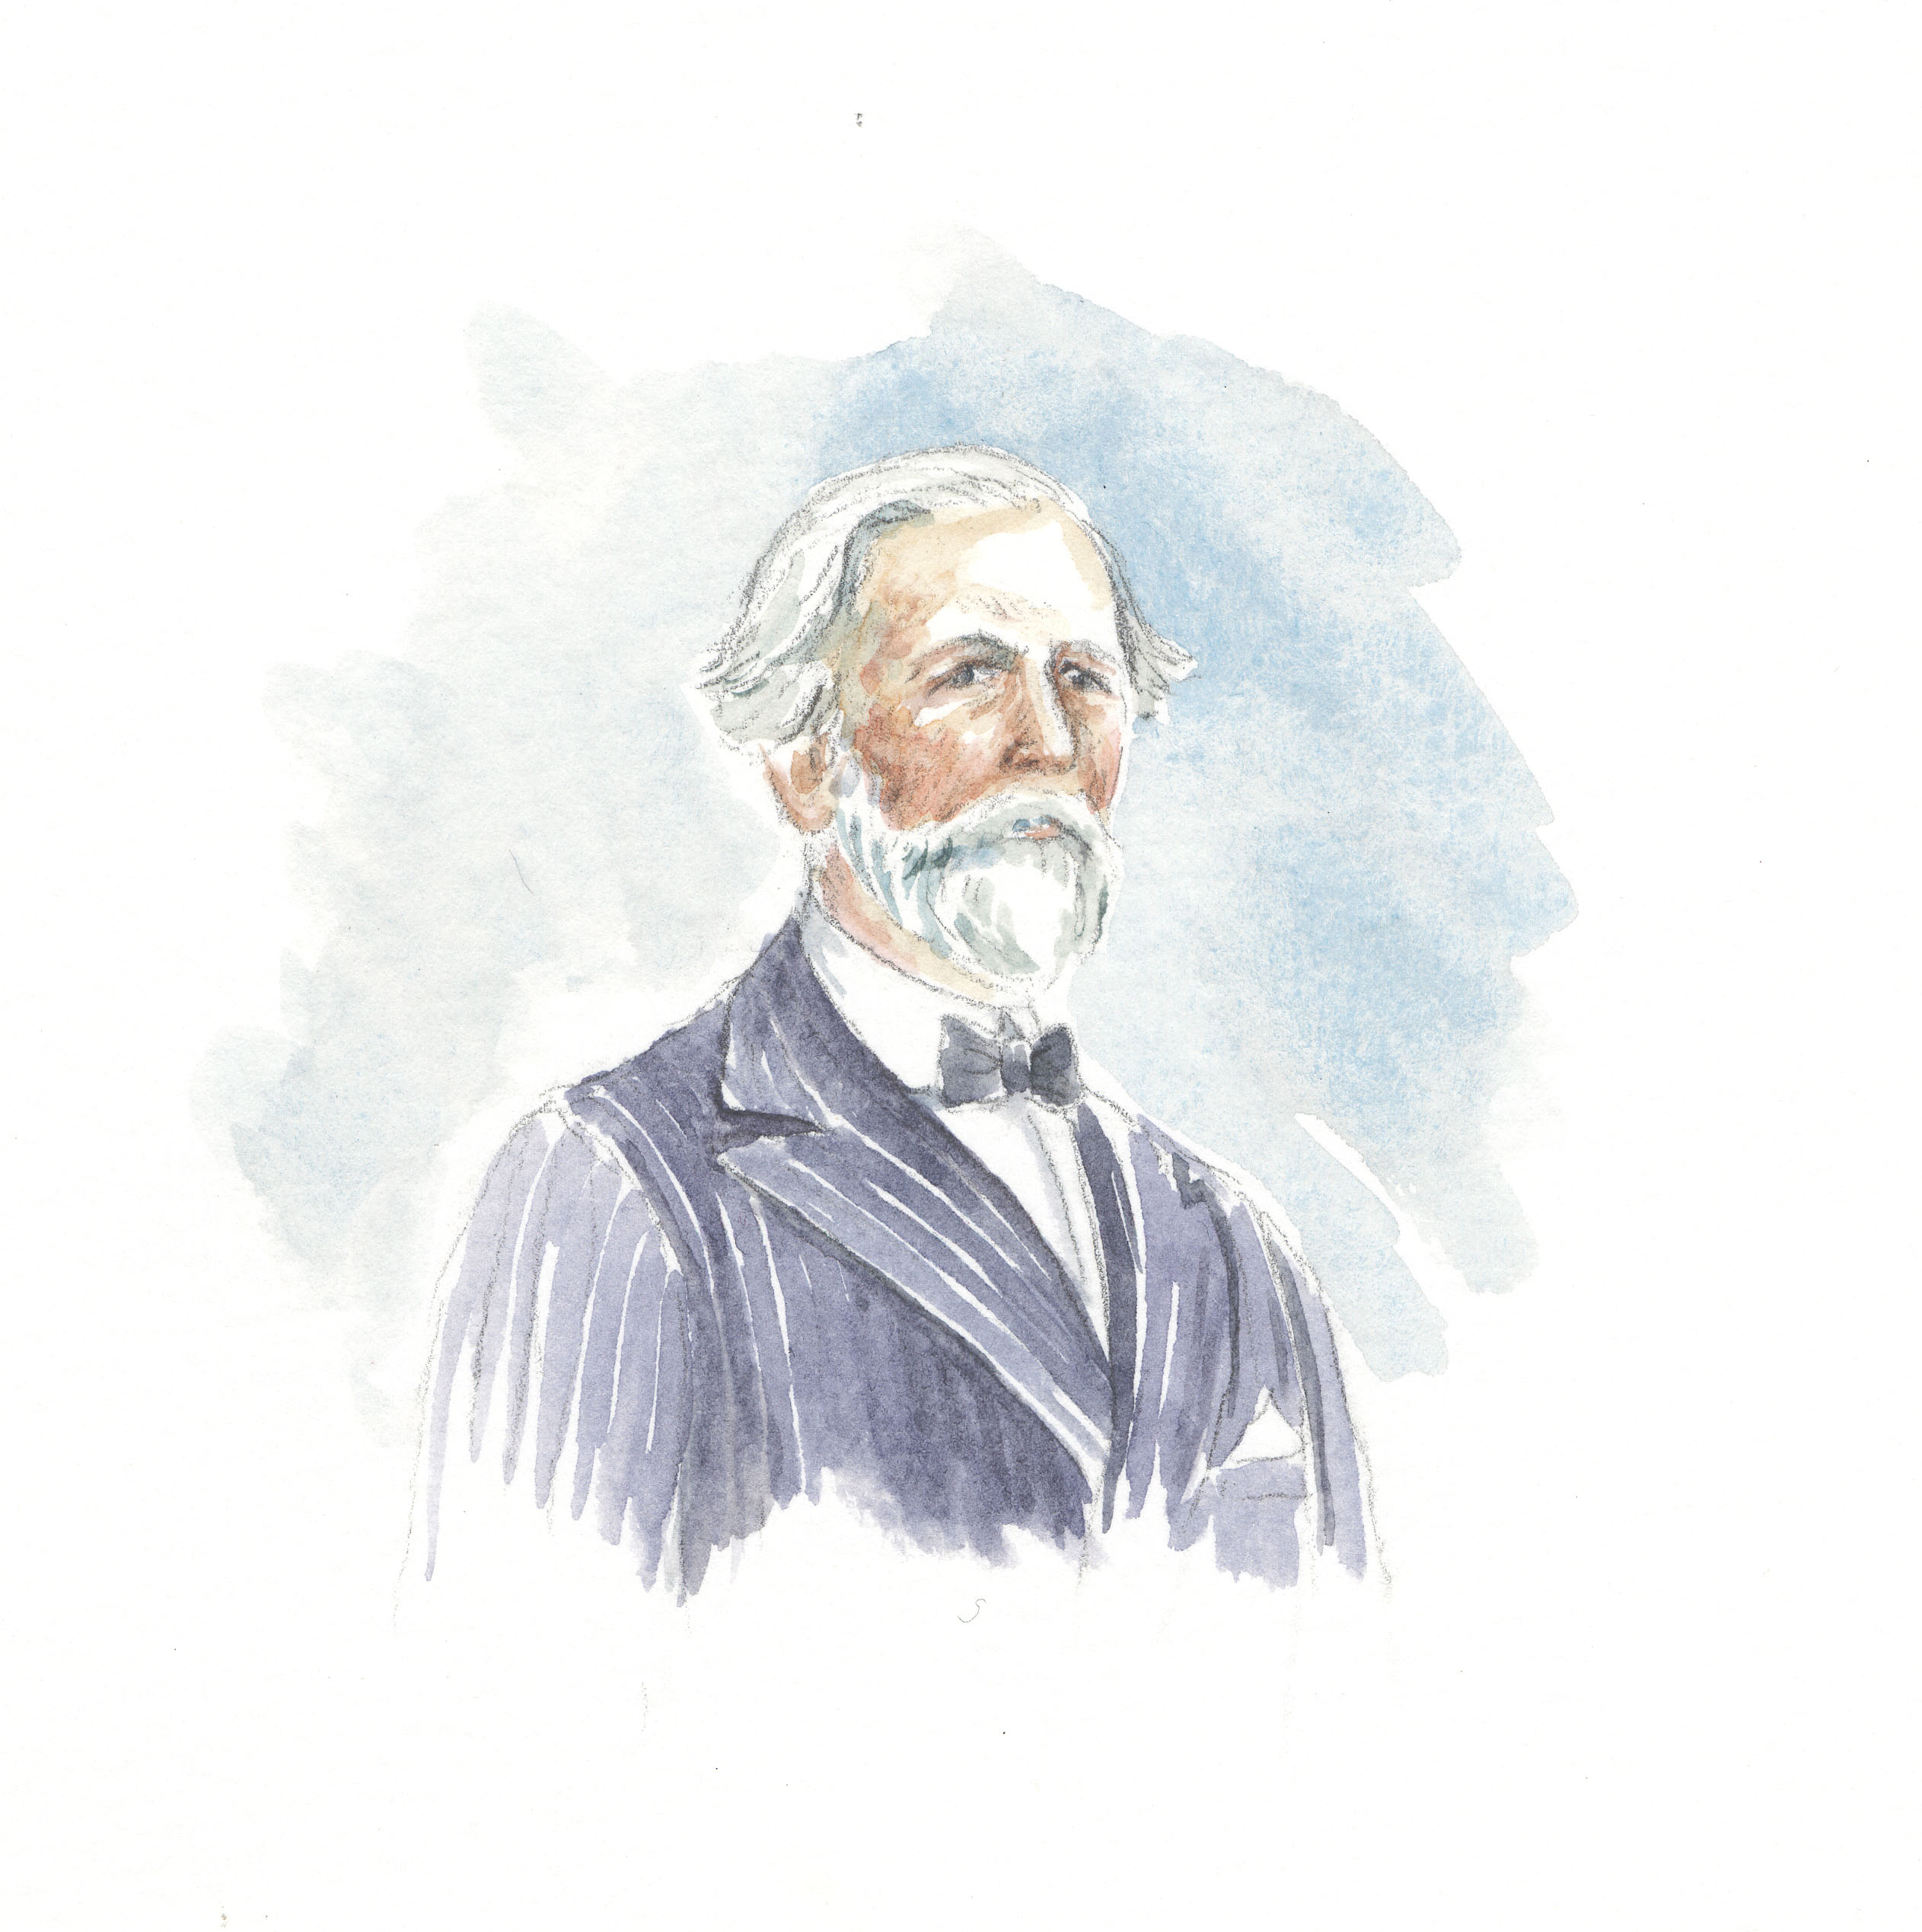 watercolour image showing head and shoulders of man with white hair and beard